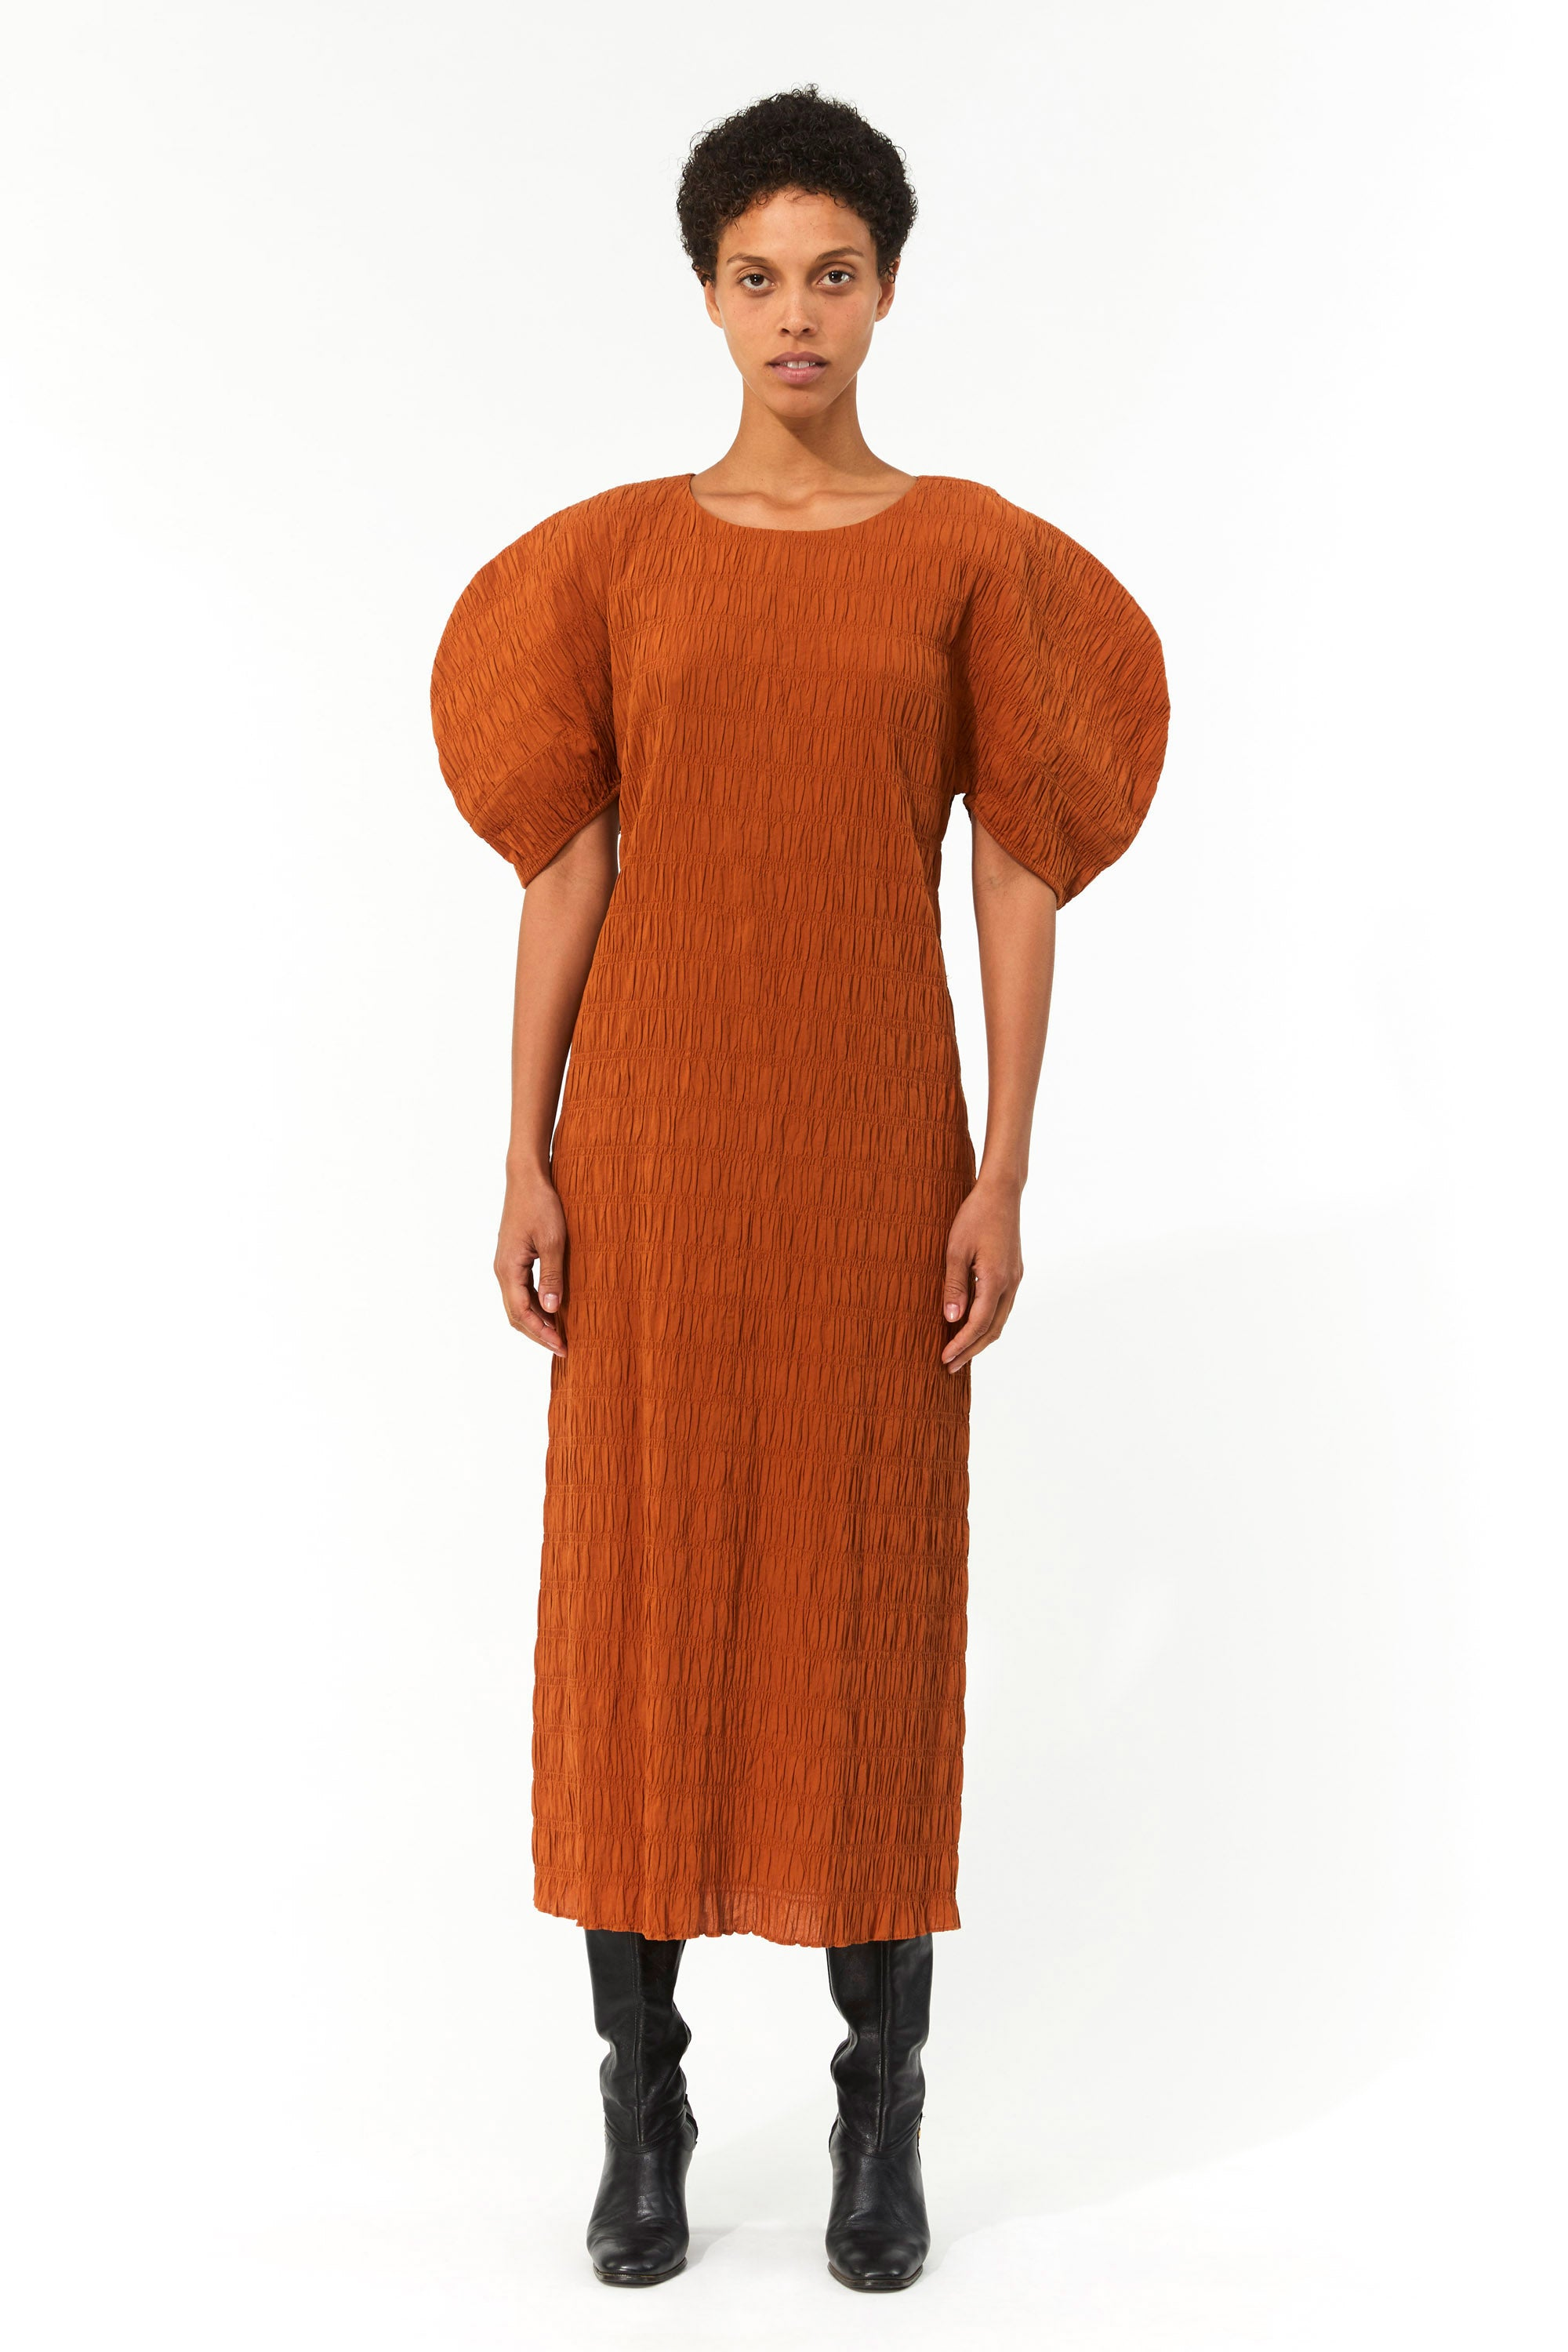 Mara Hoffman Brown Aranza dress in organic cotton (front)